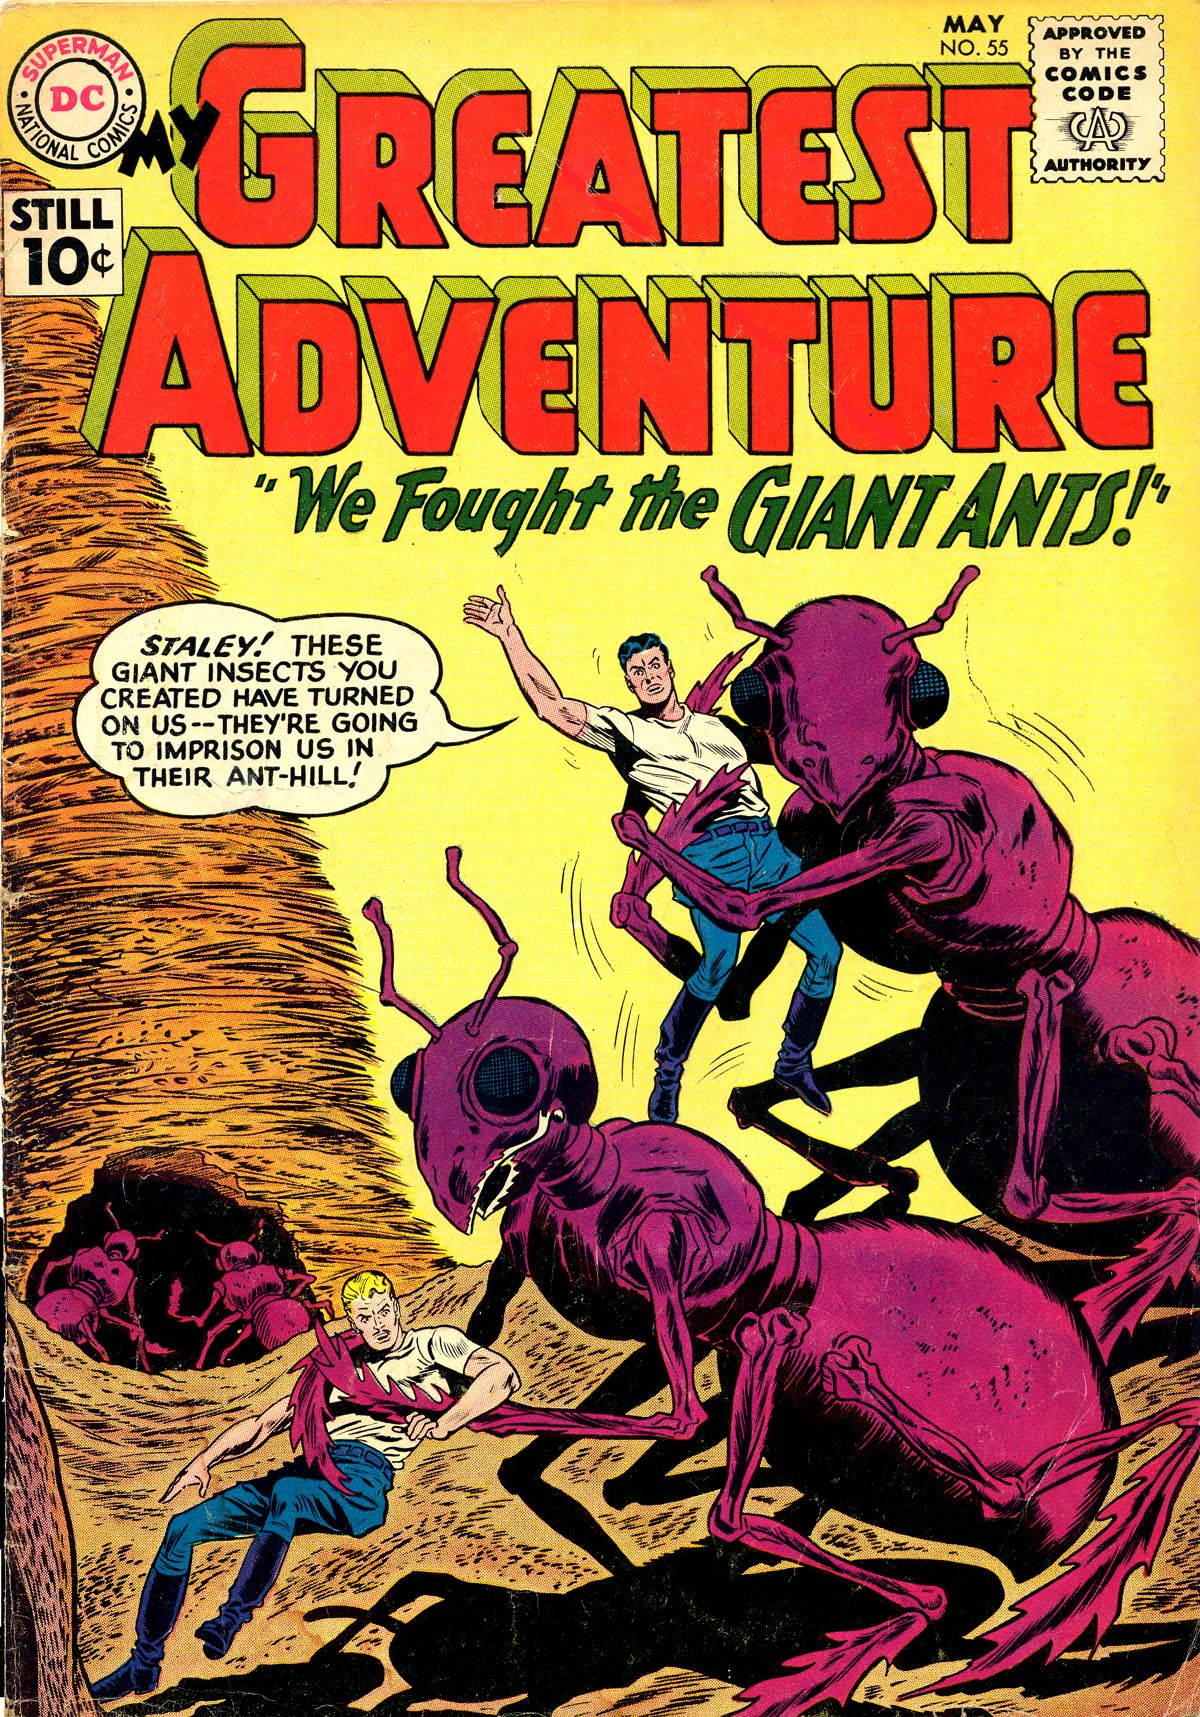 My Greatest Adventure (1955) 55 Page 1